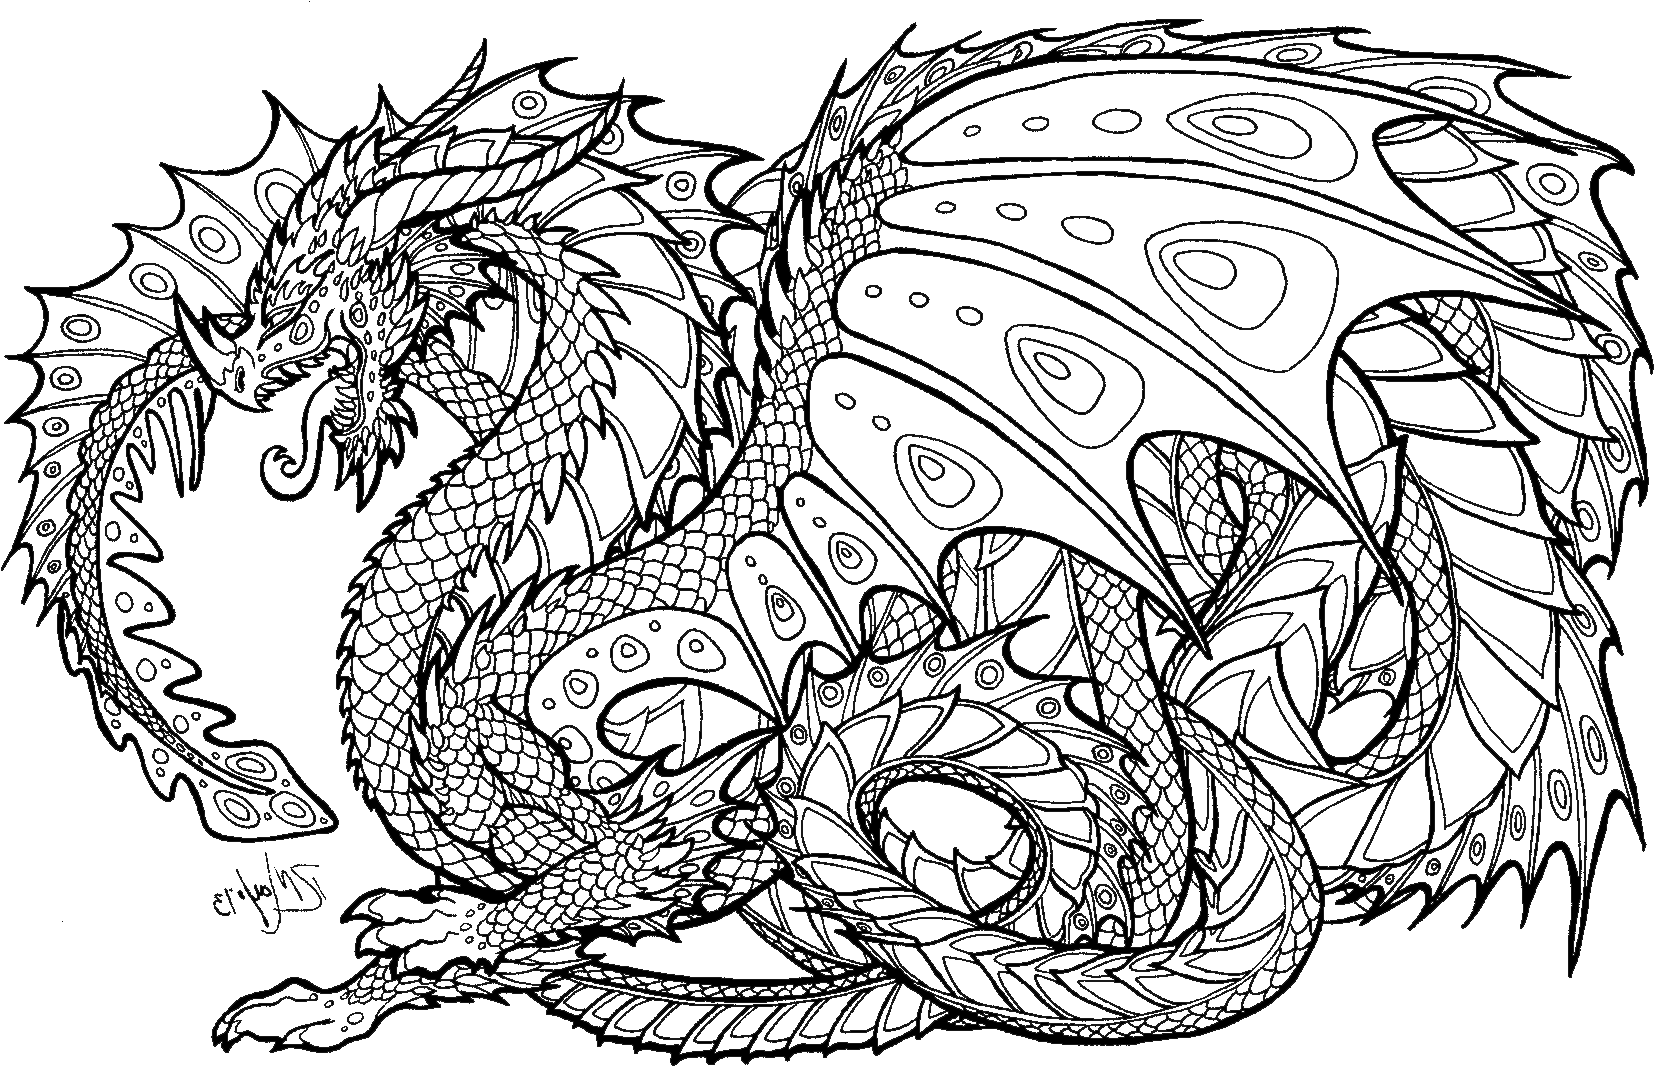 dragon colouring pictures coloring pages for adults difficult dragons at getdrawings pictures colouring dragon